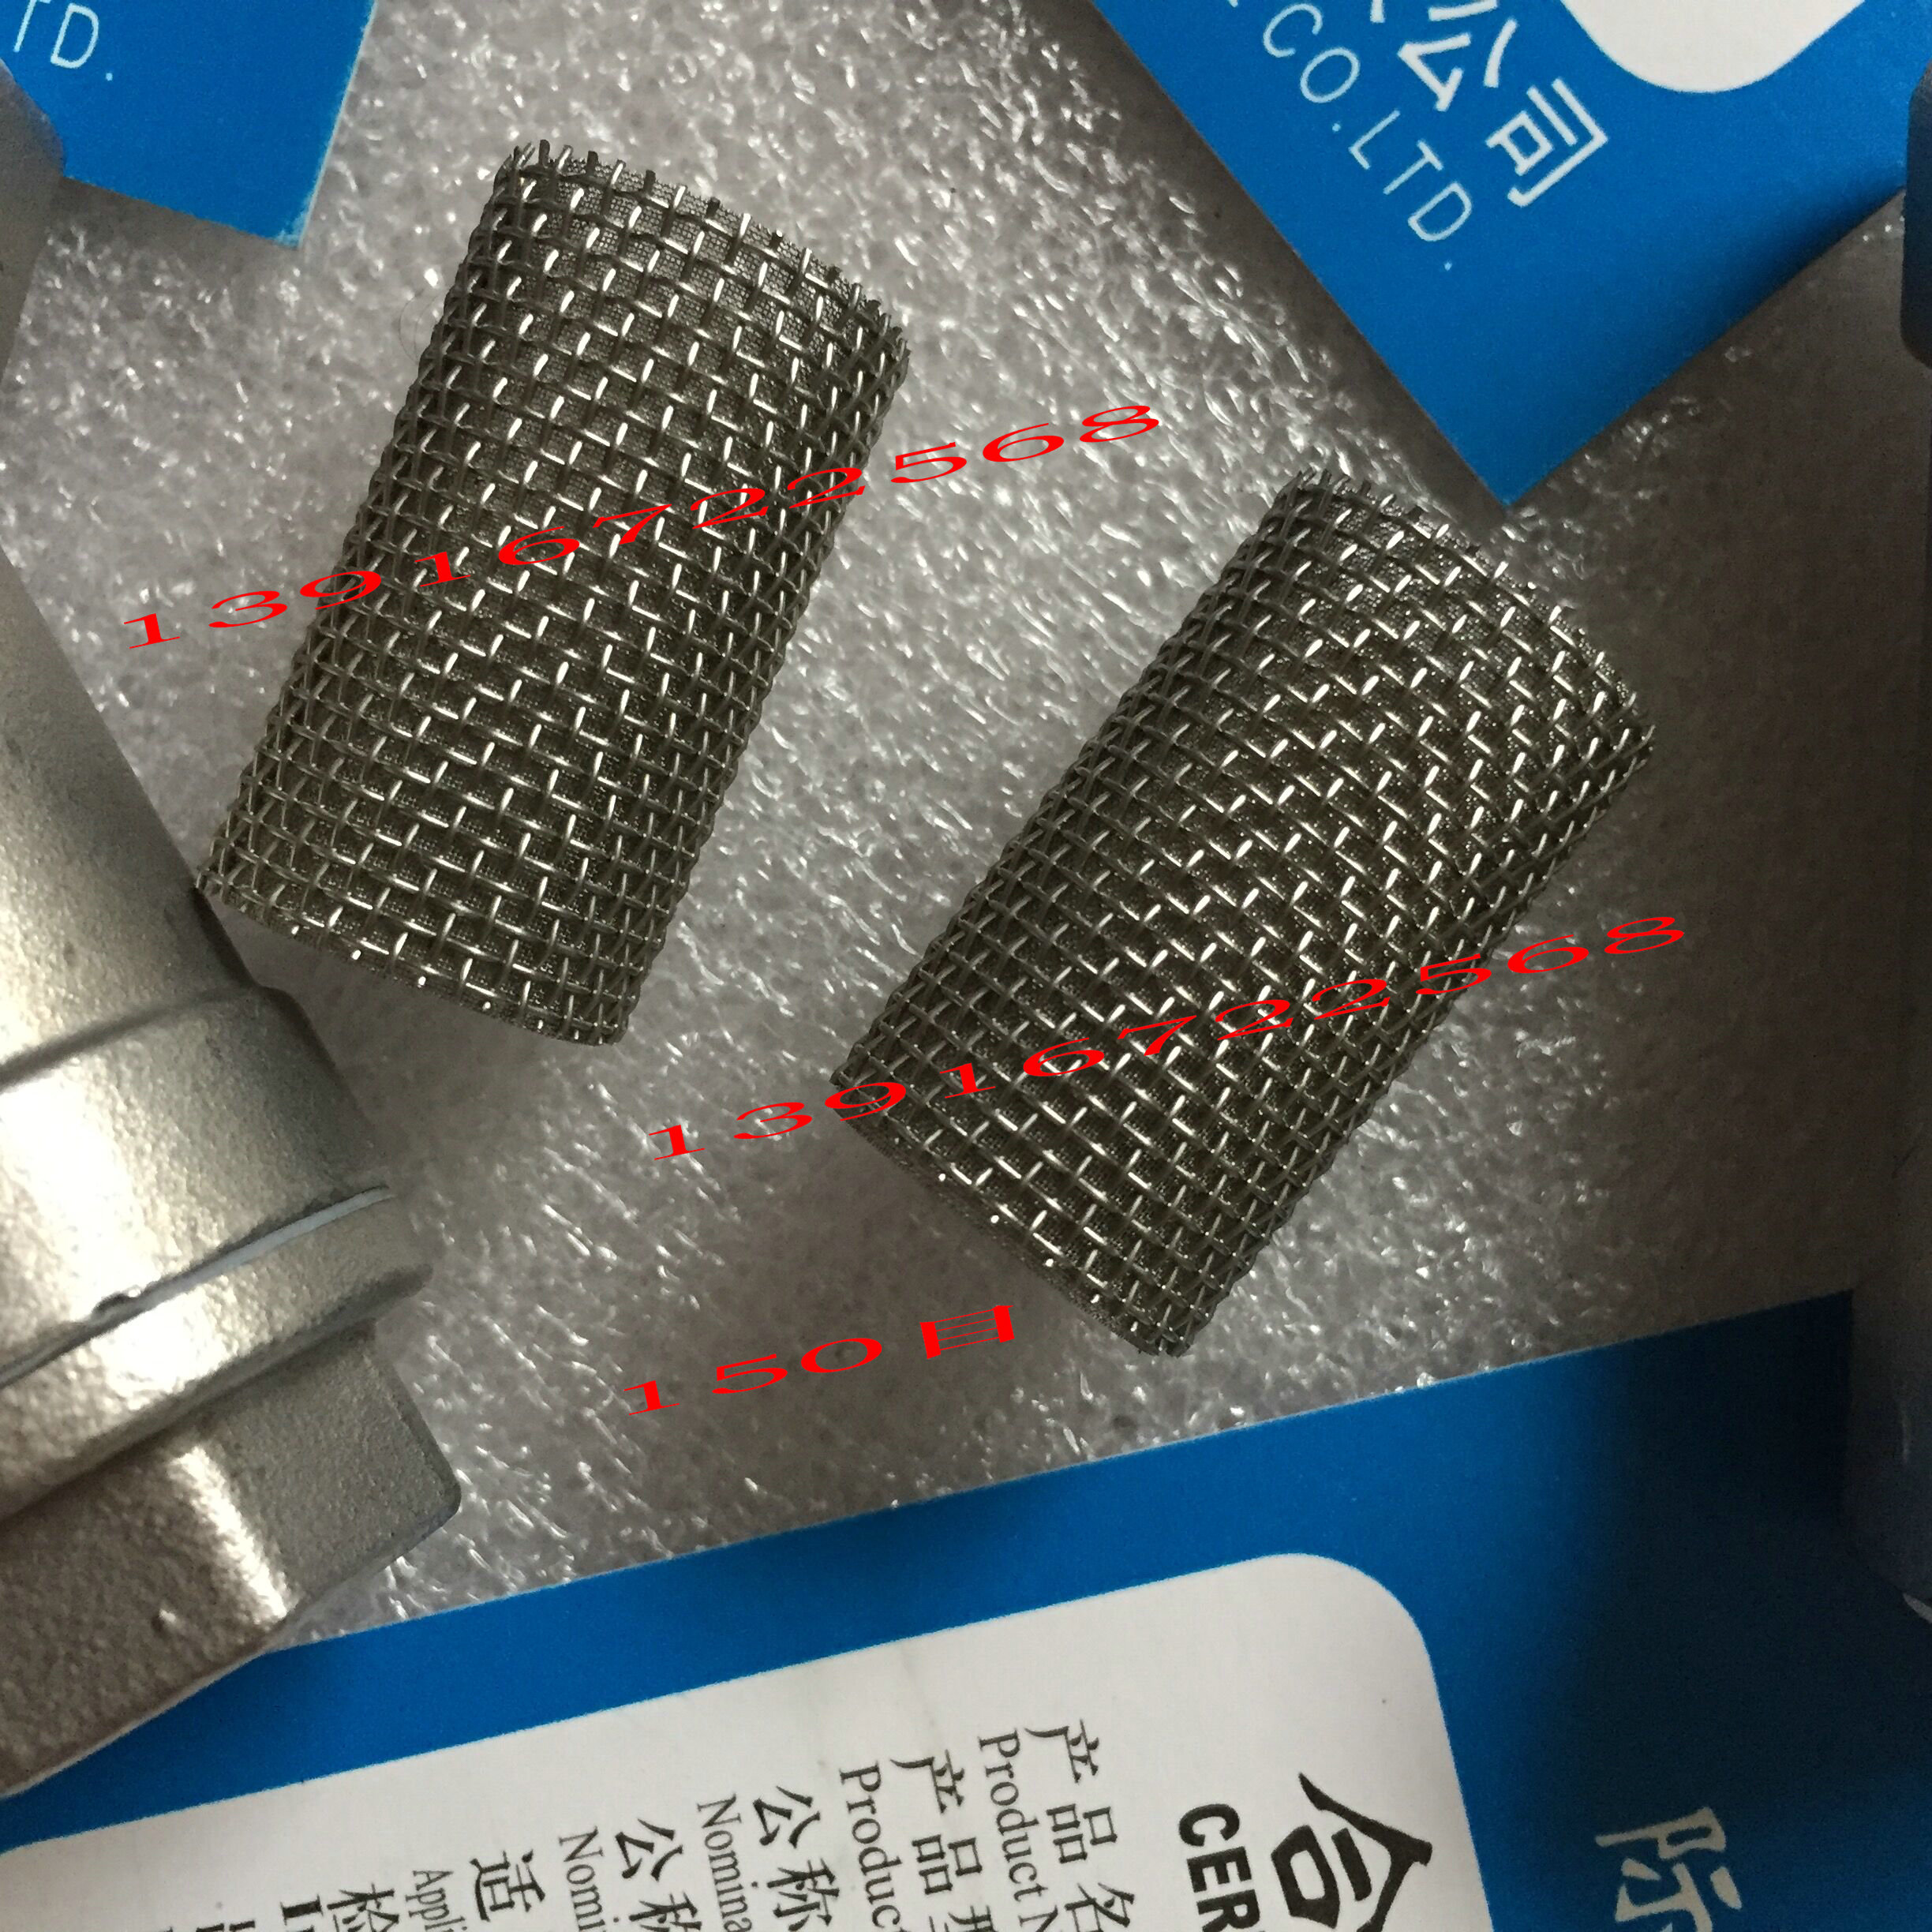 Stainless steel double-layer woven mesh, outer 20 mesh inner layer, 80 mesh Y filter cartridge, DN15 order